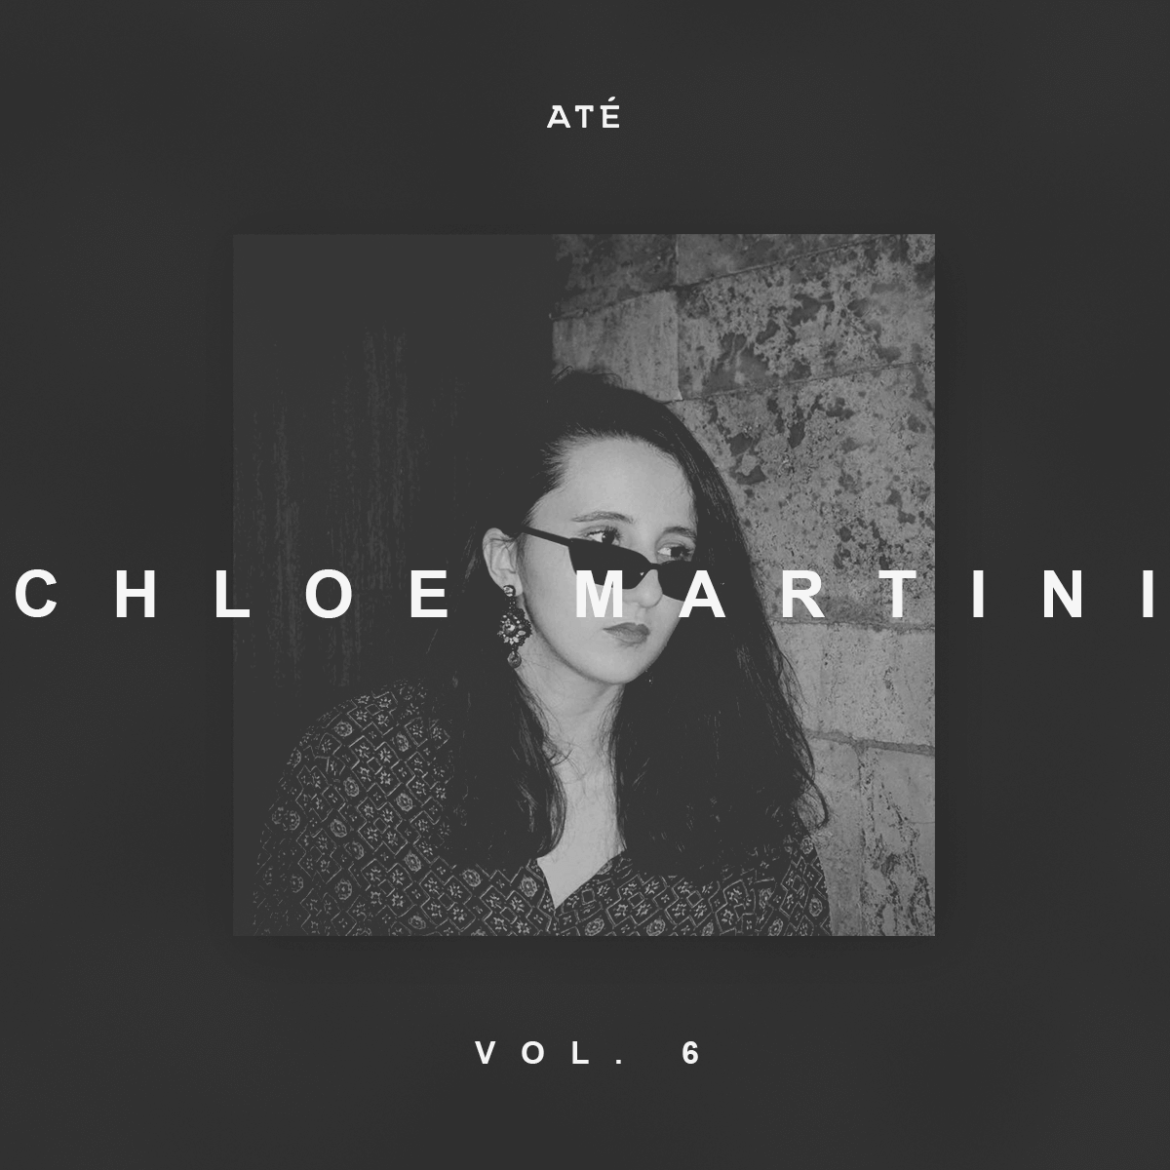 chloe_martini_ate_mix